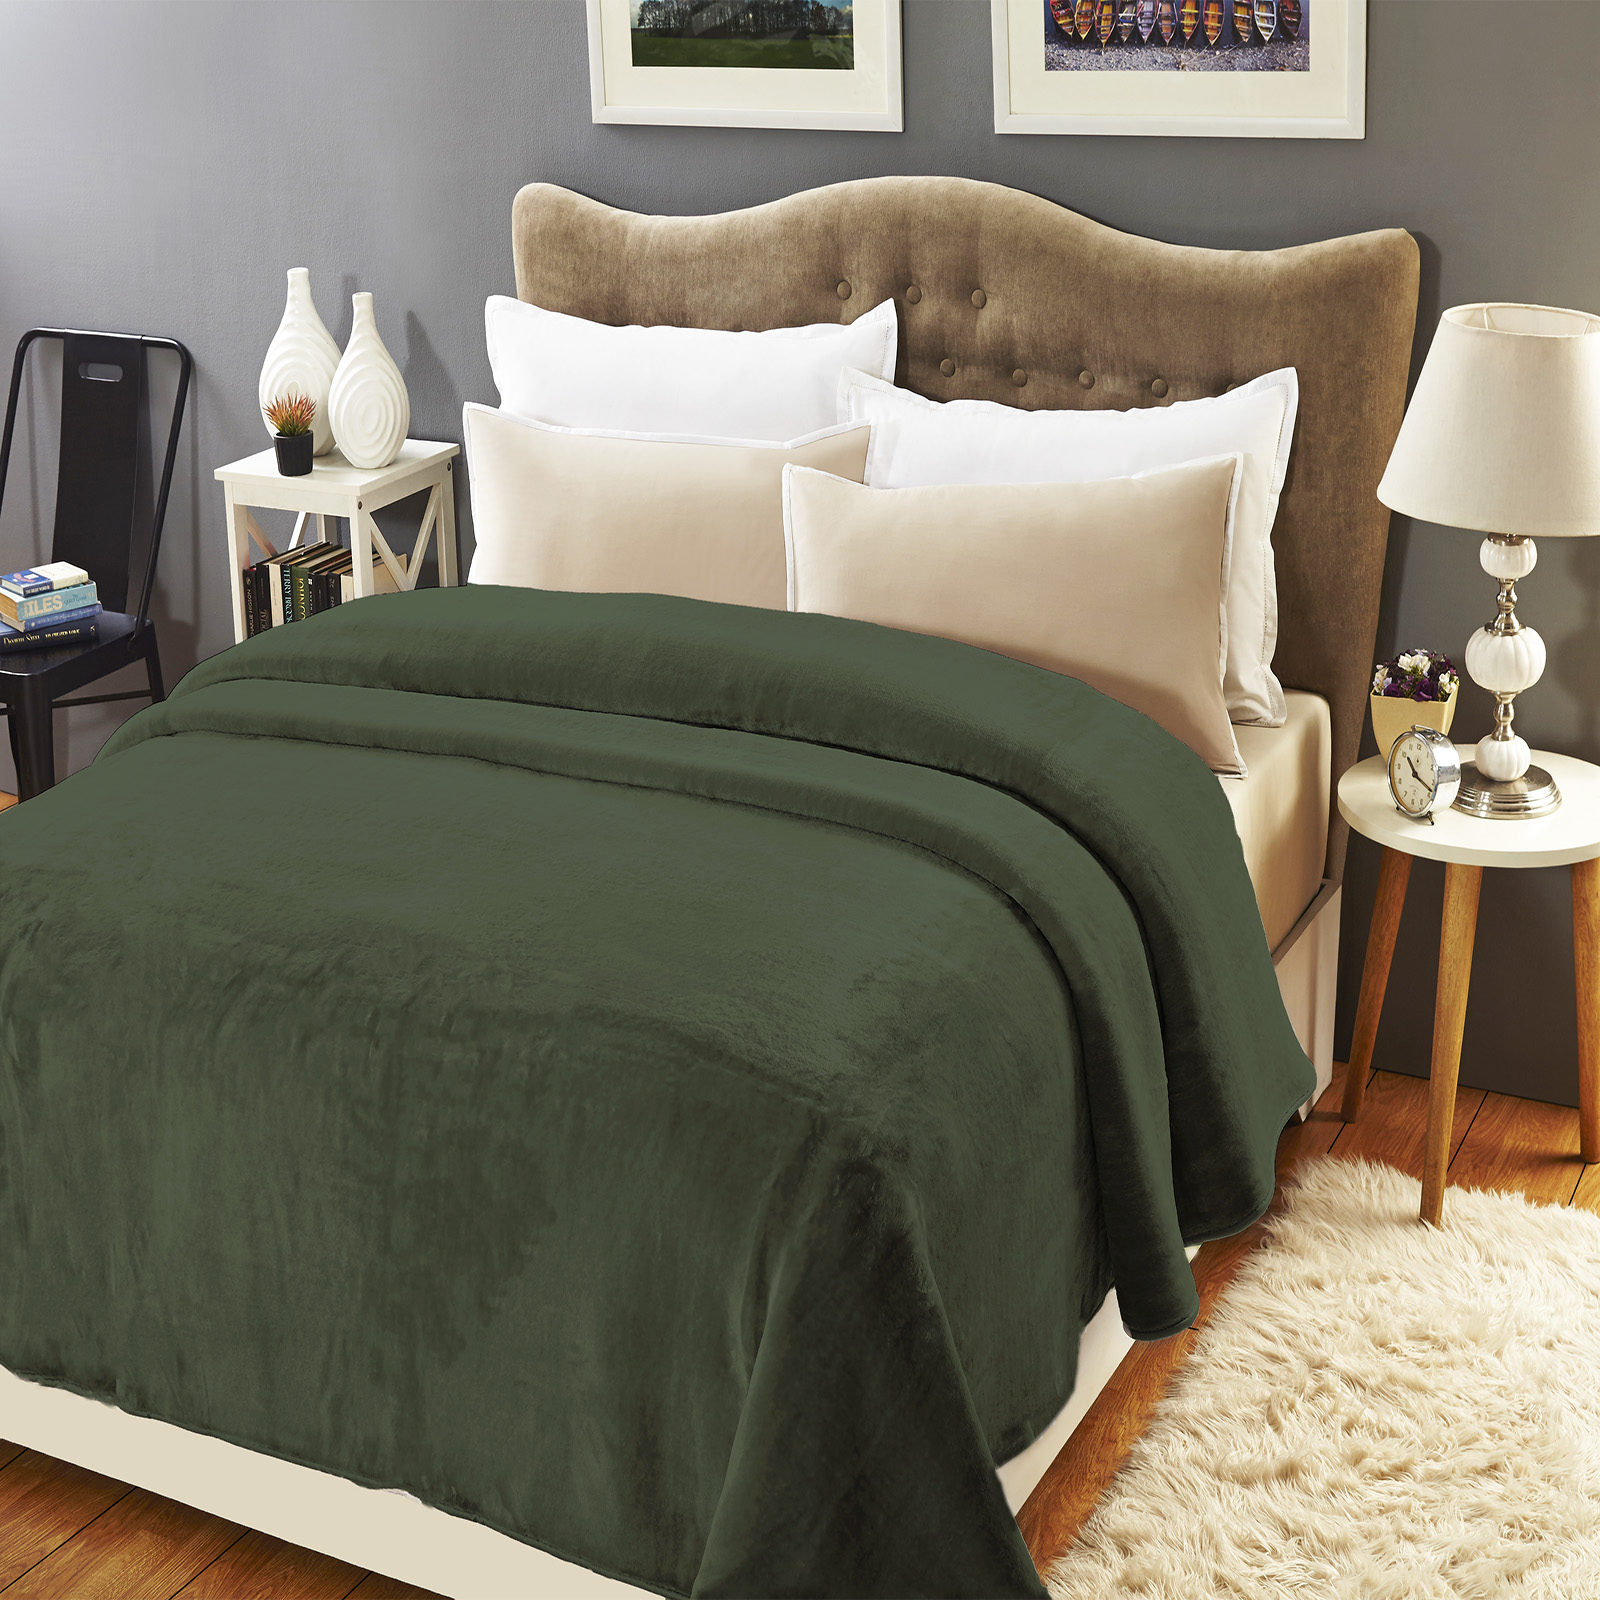 Mink Blankets Winter Weight Queen/King Size | Agave